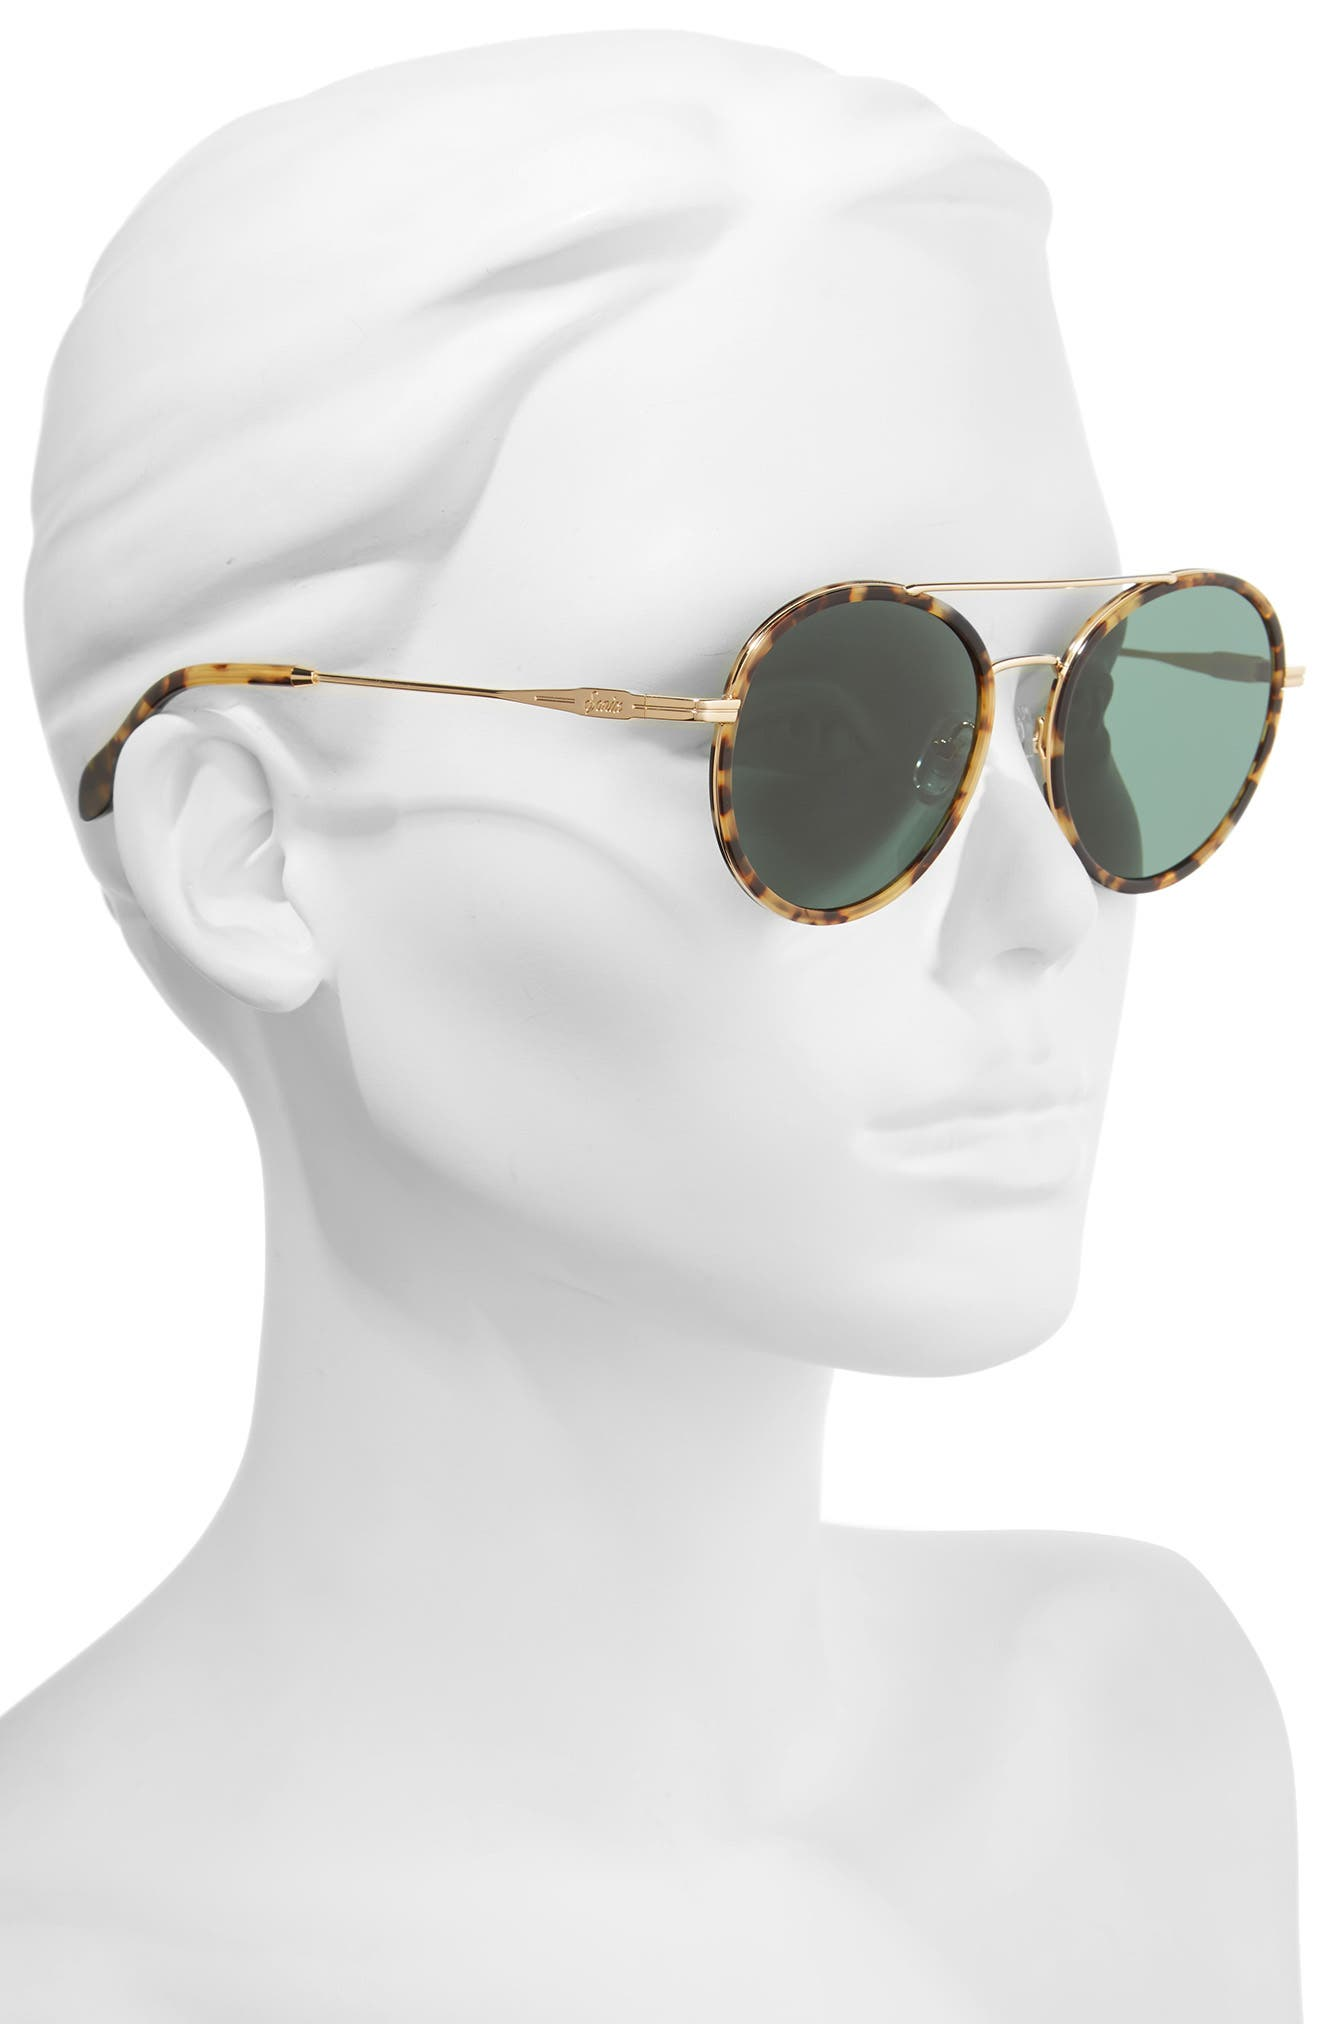 Charli 50mm Mirrored Lens Round Sunglasses,                             Alternate thumbnail 2, color,                             200